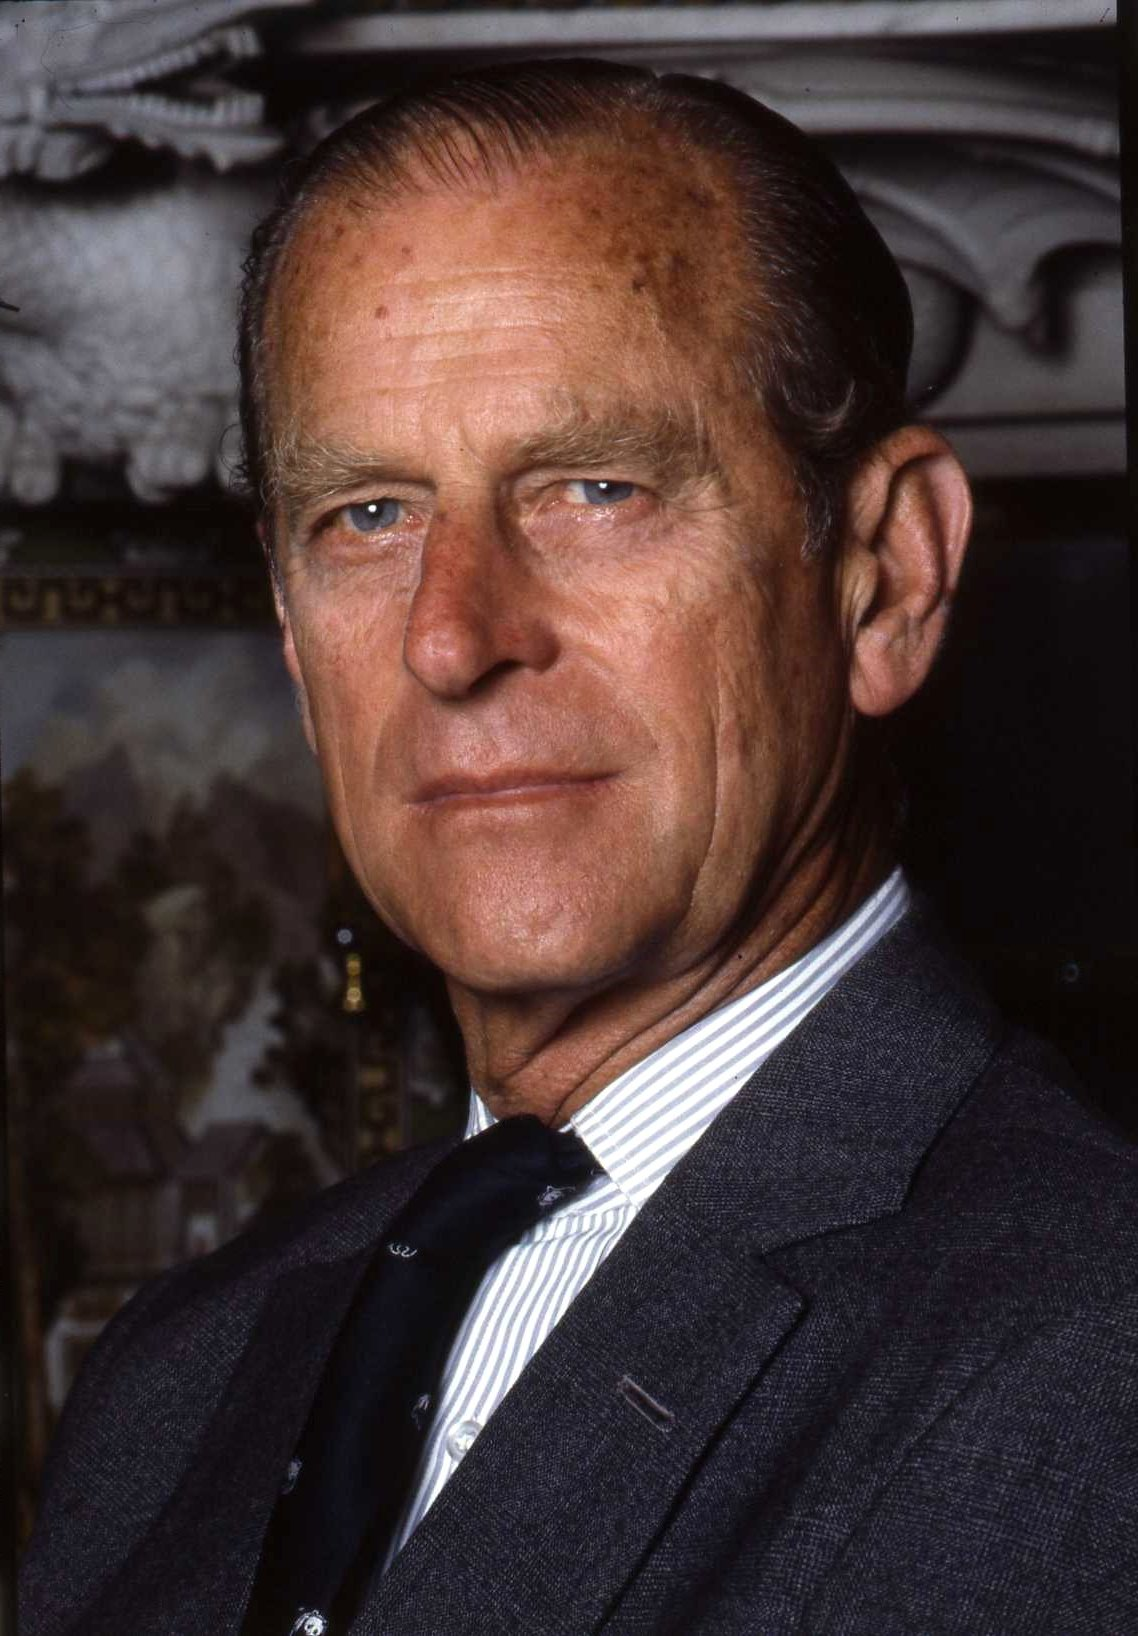 Prince Philip Movement - Wikipedia